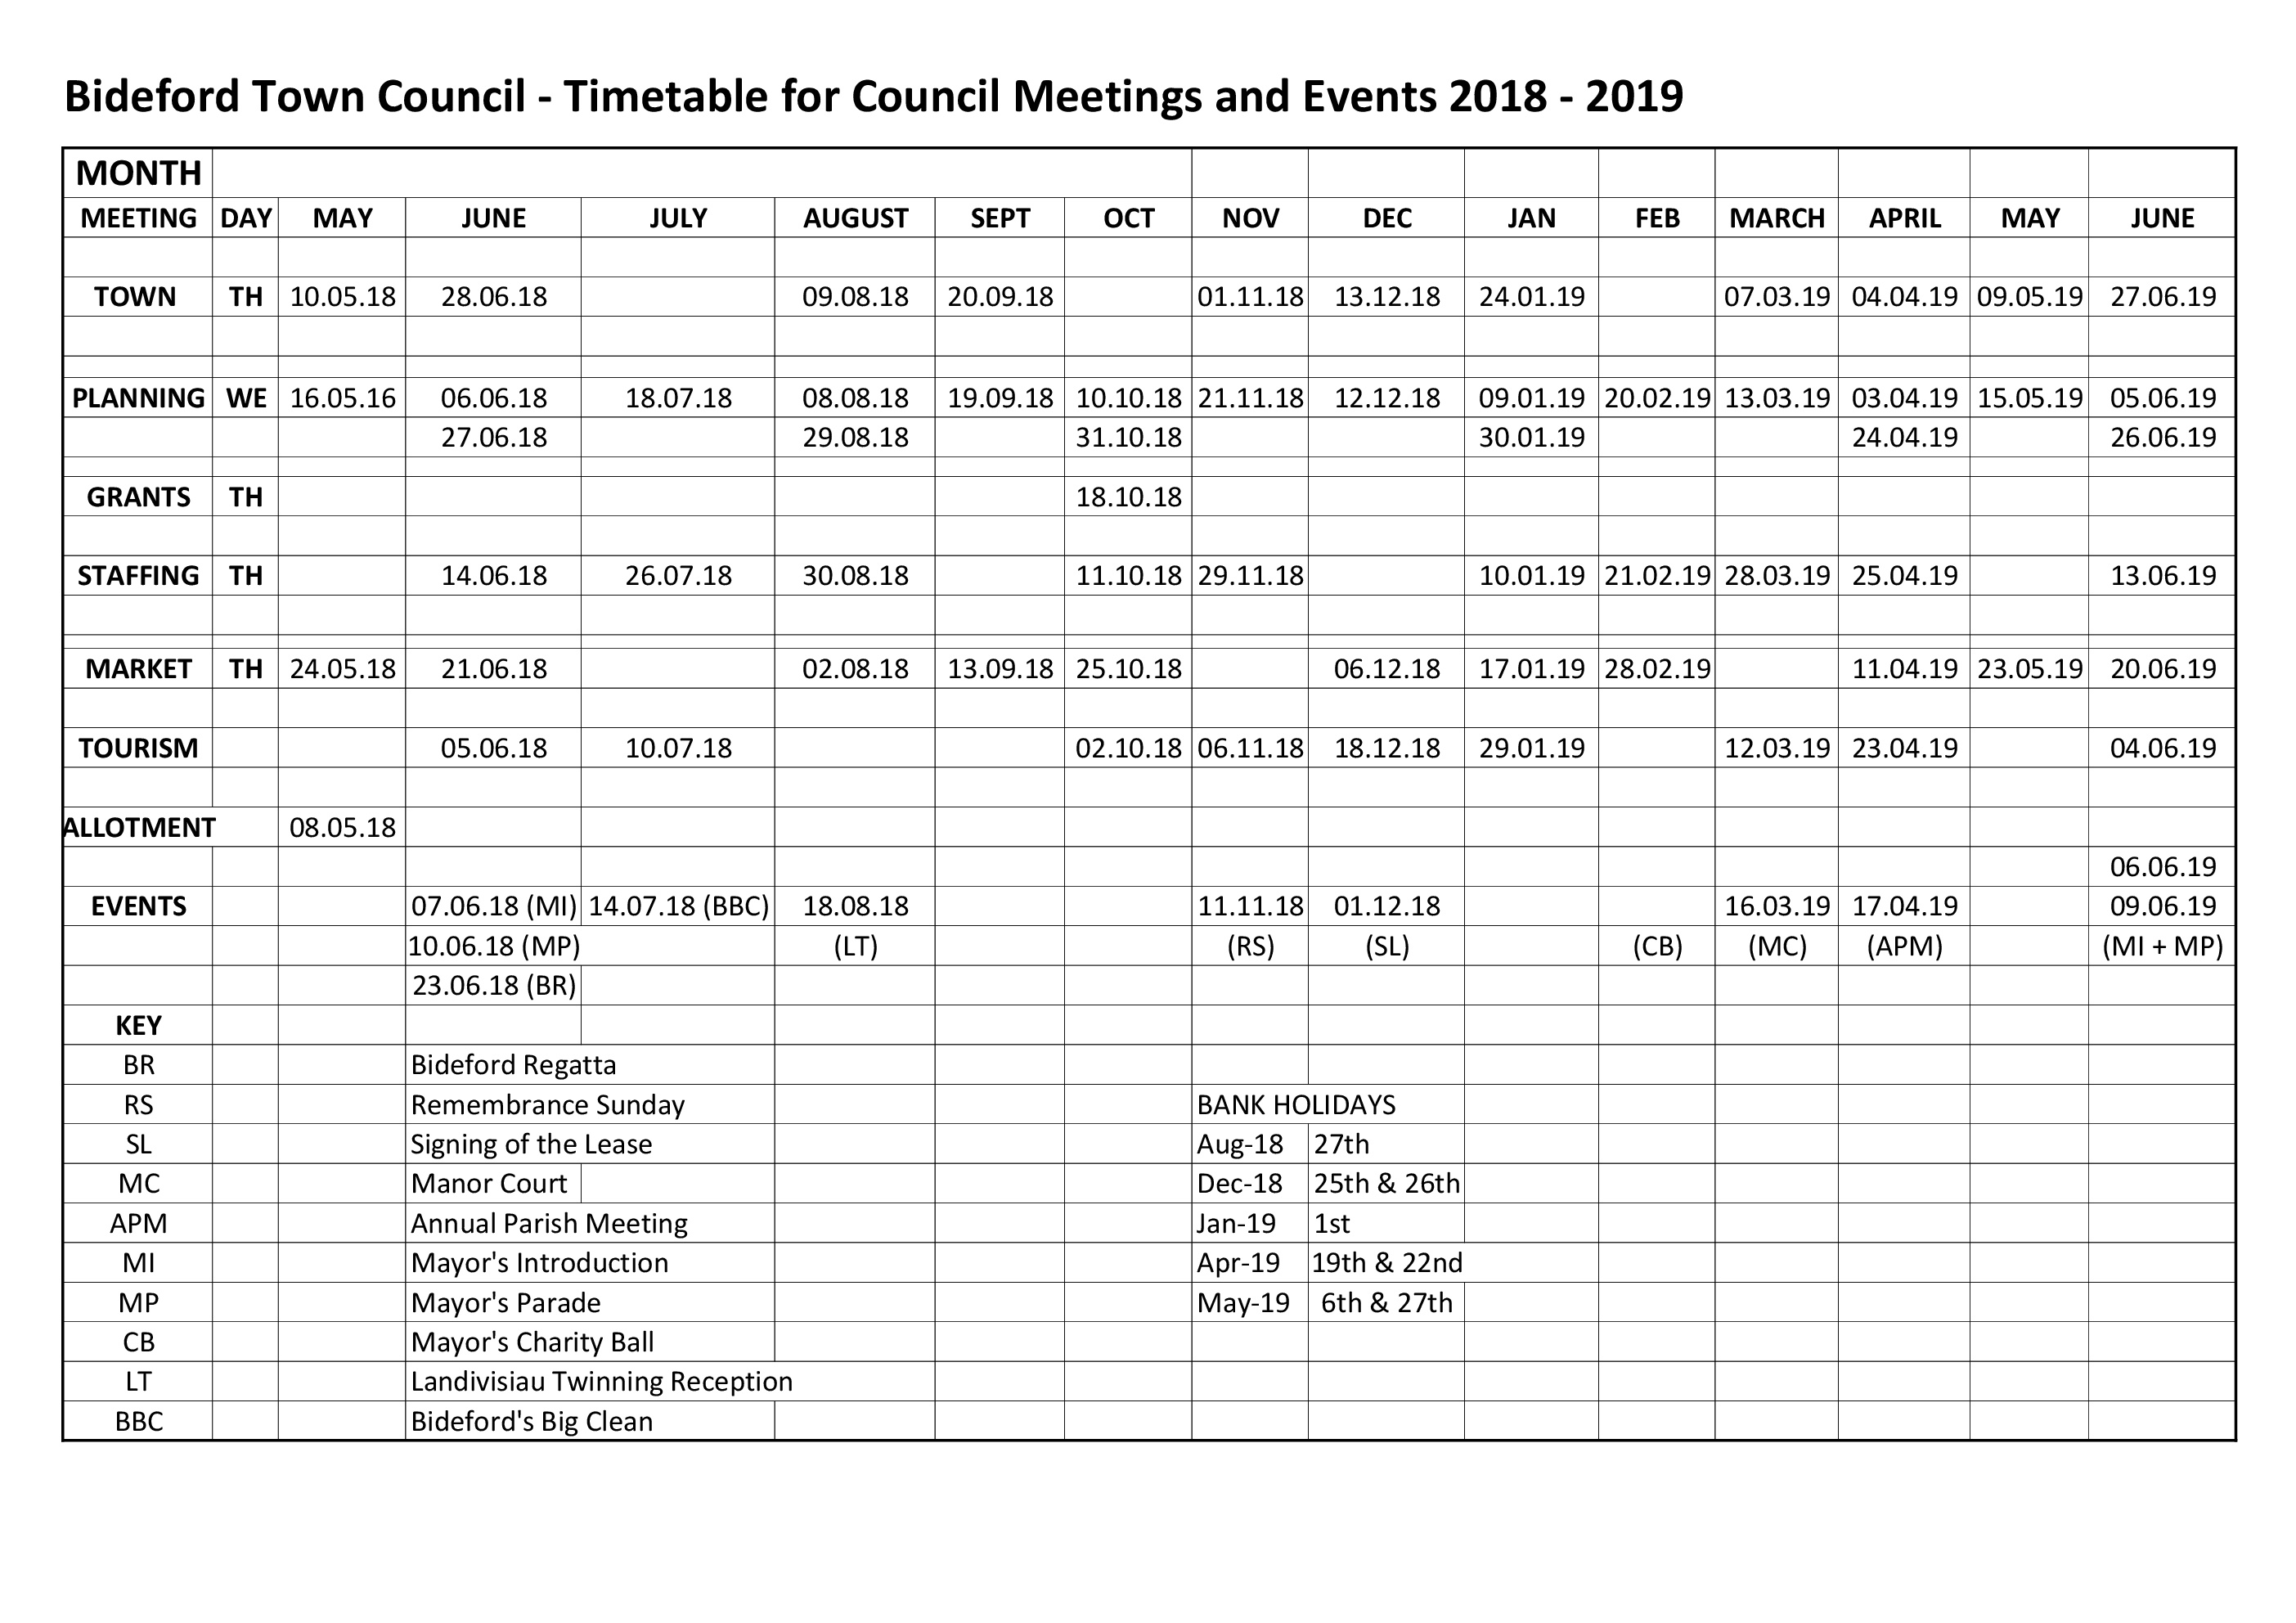 Timetable for Meetings 2018 2019